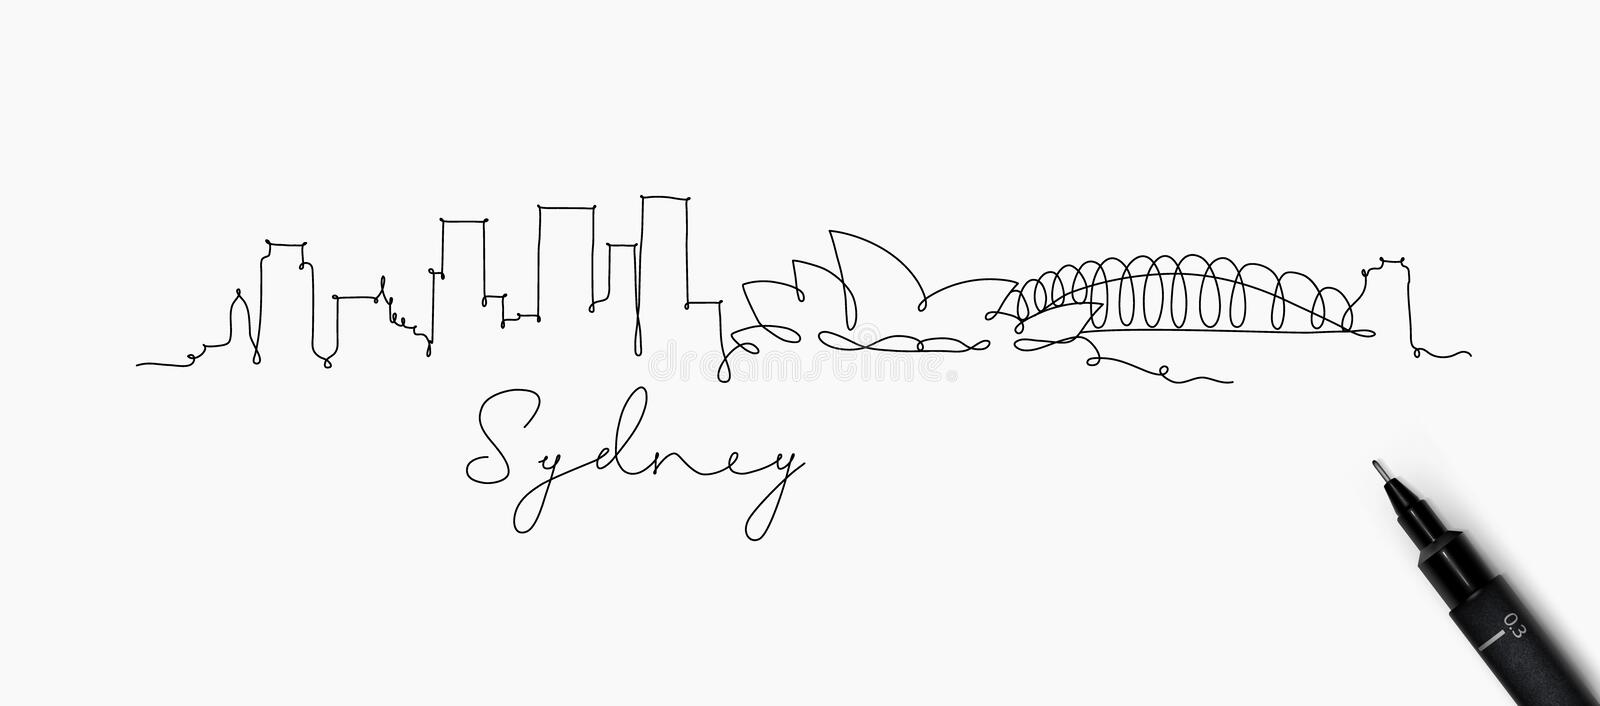 Pen line silhouette sydney. City silhouette sydney in pen line style drawing with black lines on white background royalty free illustration